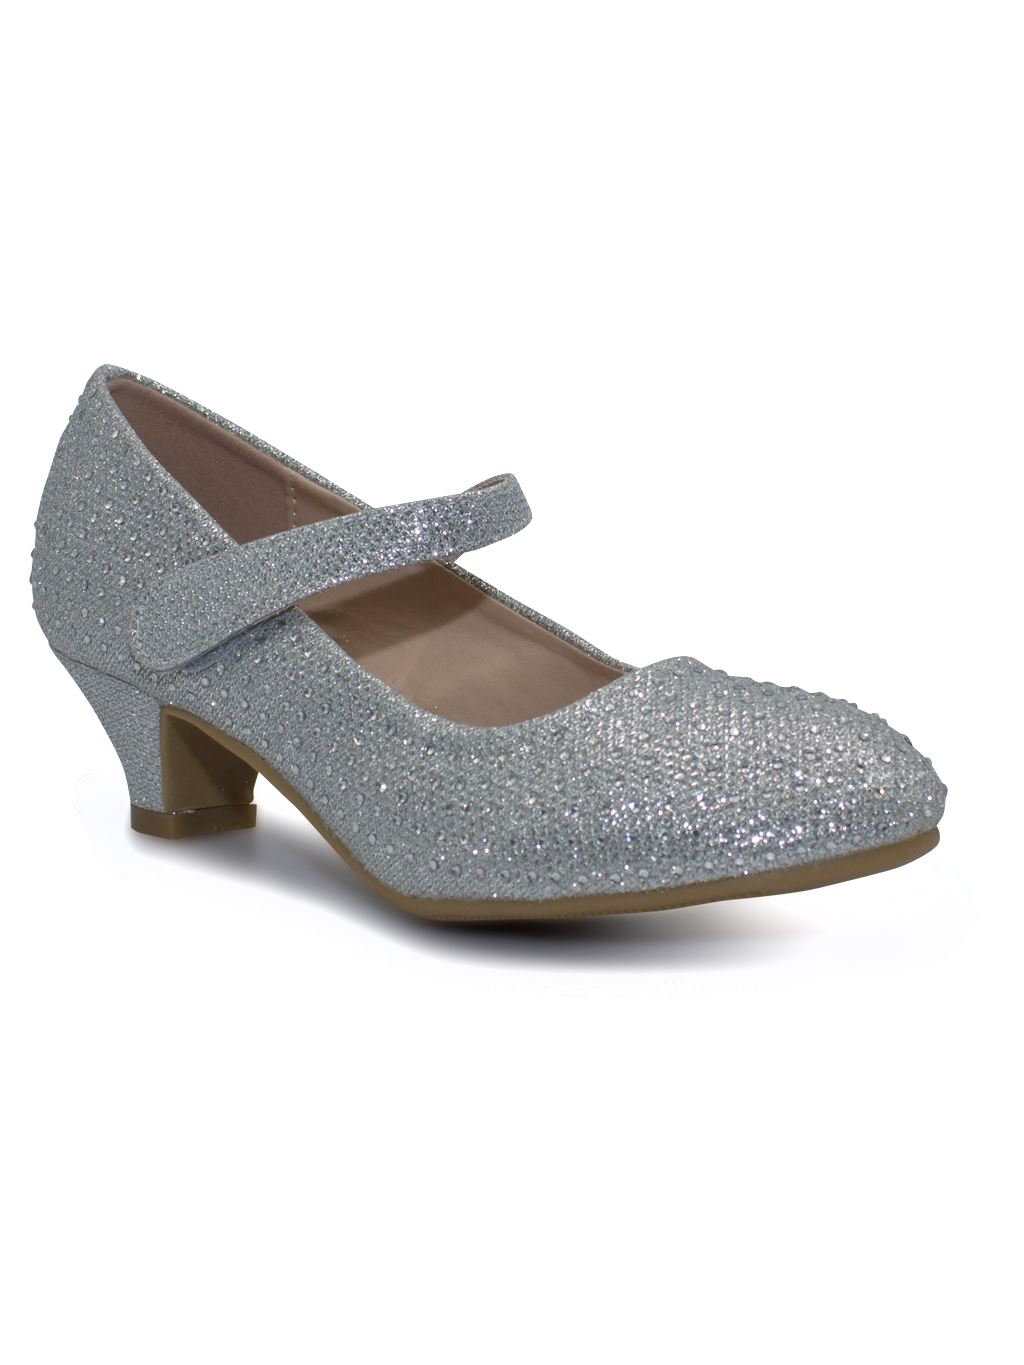 Girls-Party-Bridesmaid-Glitter-Diamante-Wedding-Block-Low-Heel-Shoes miniatura 5